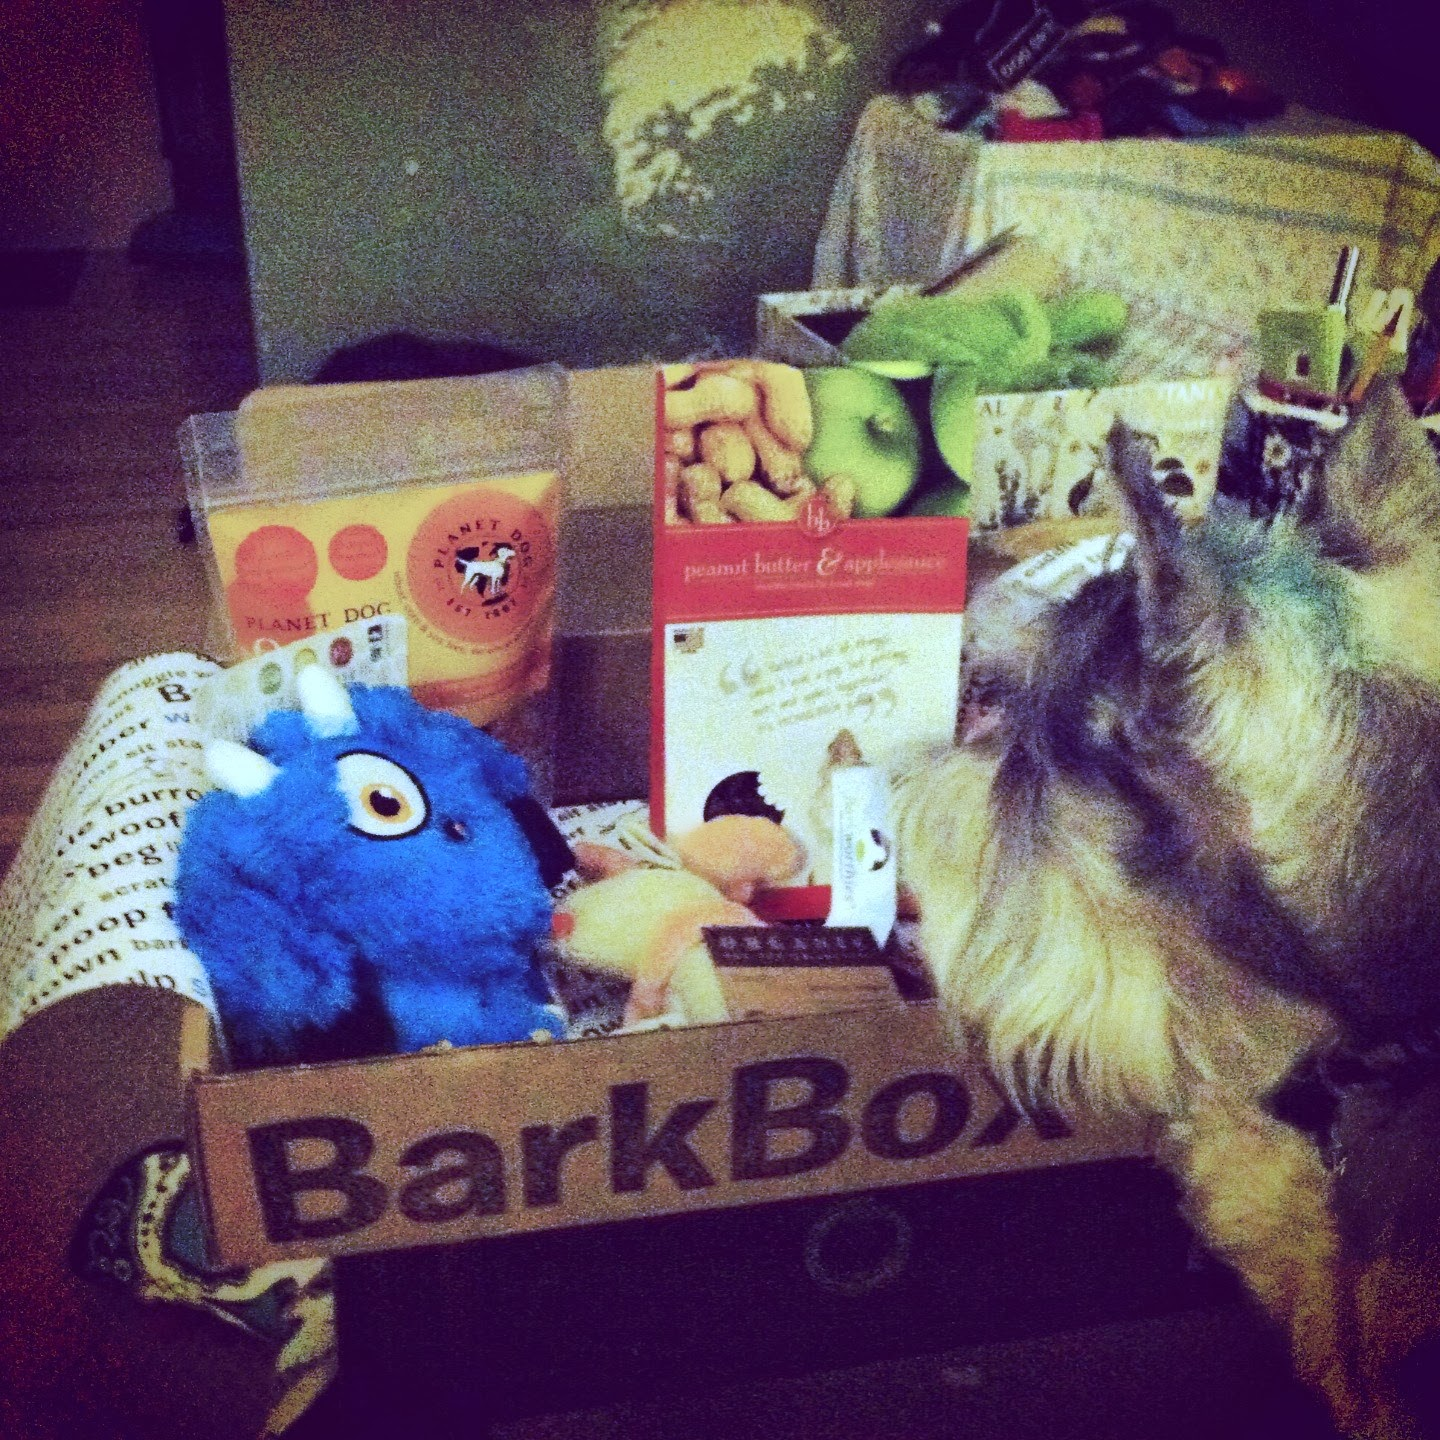 You know your pup wants a Barkbox!